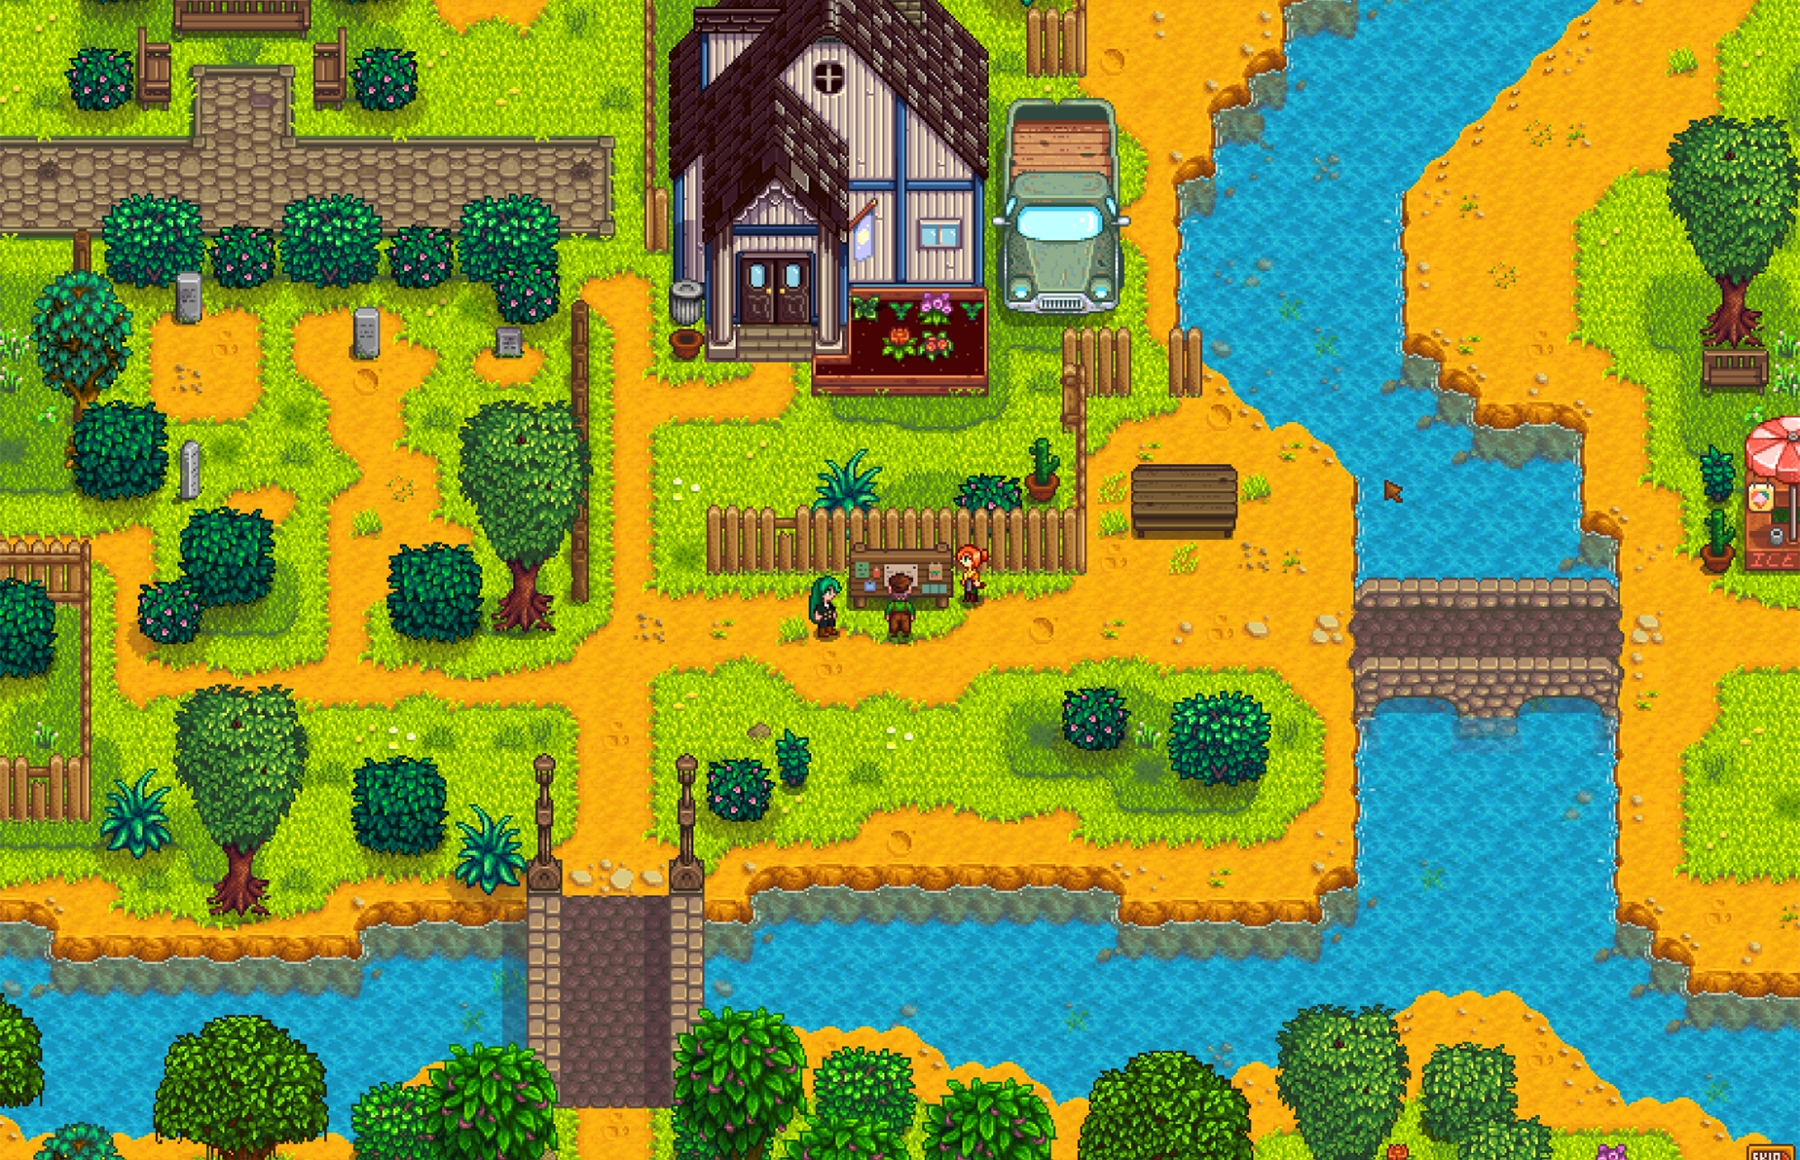 Clog Report: Inspired by Stardew Valley, student drops to become farmer